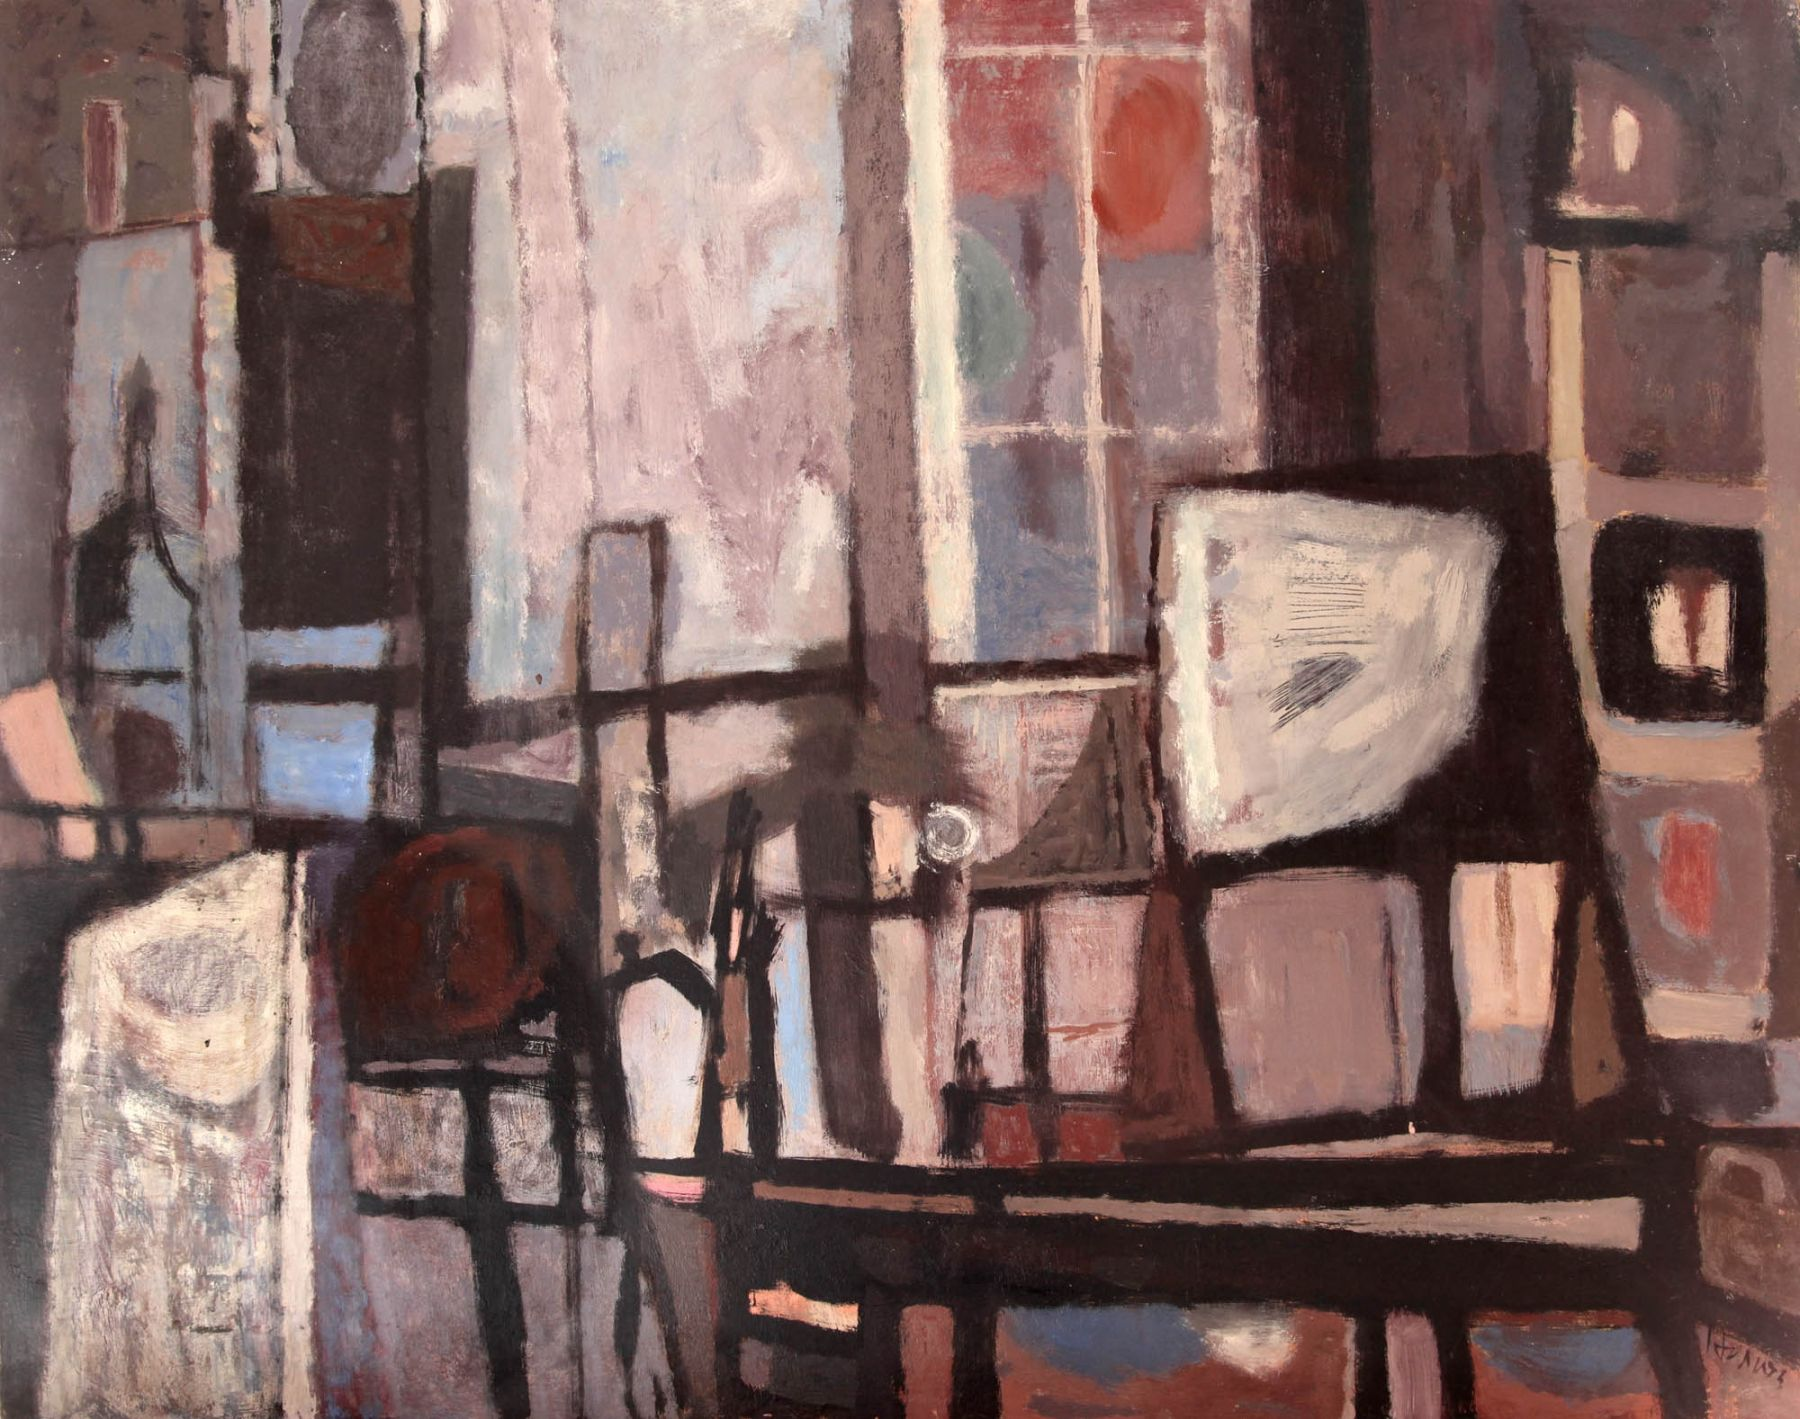 Richard Haines, Blue Interior, c. mid 1950s